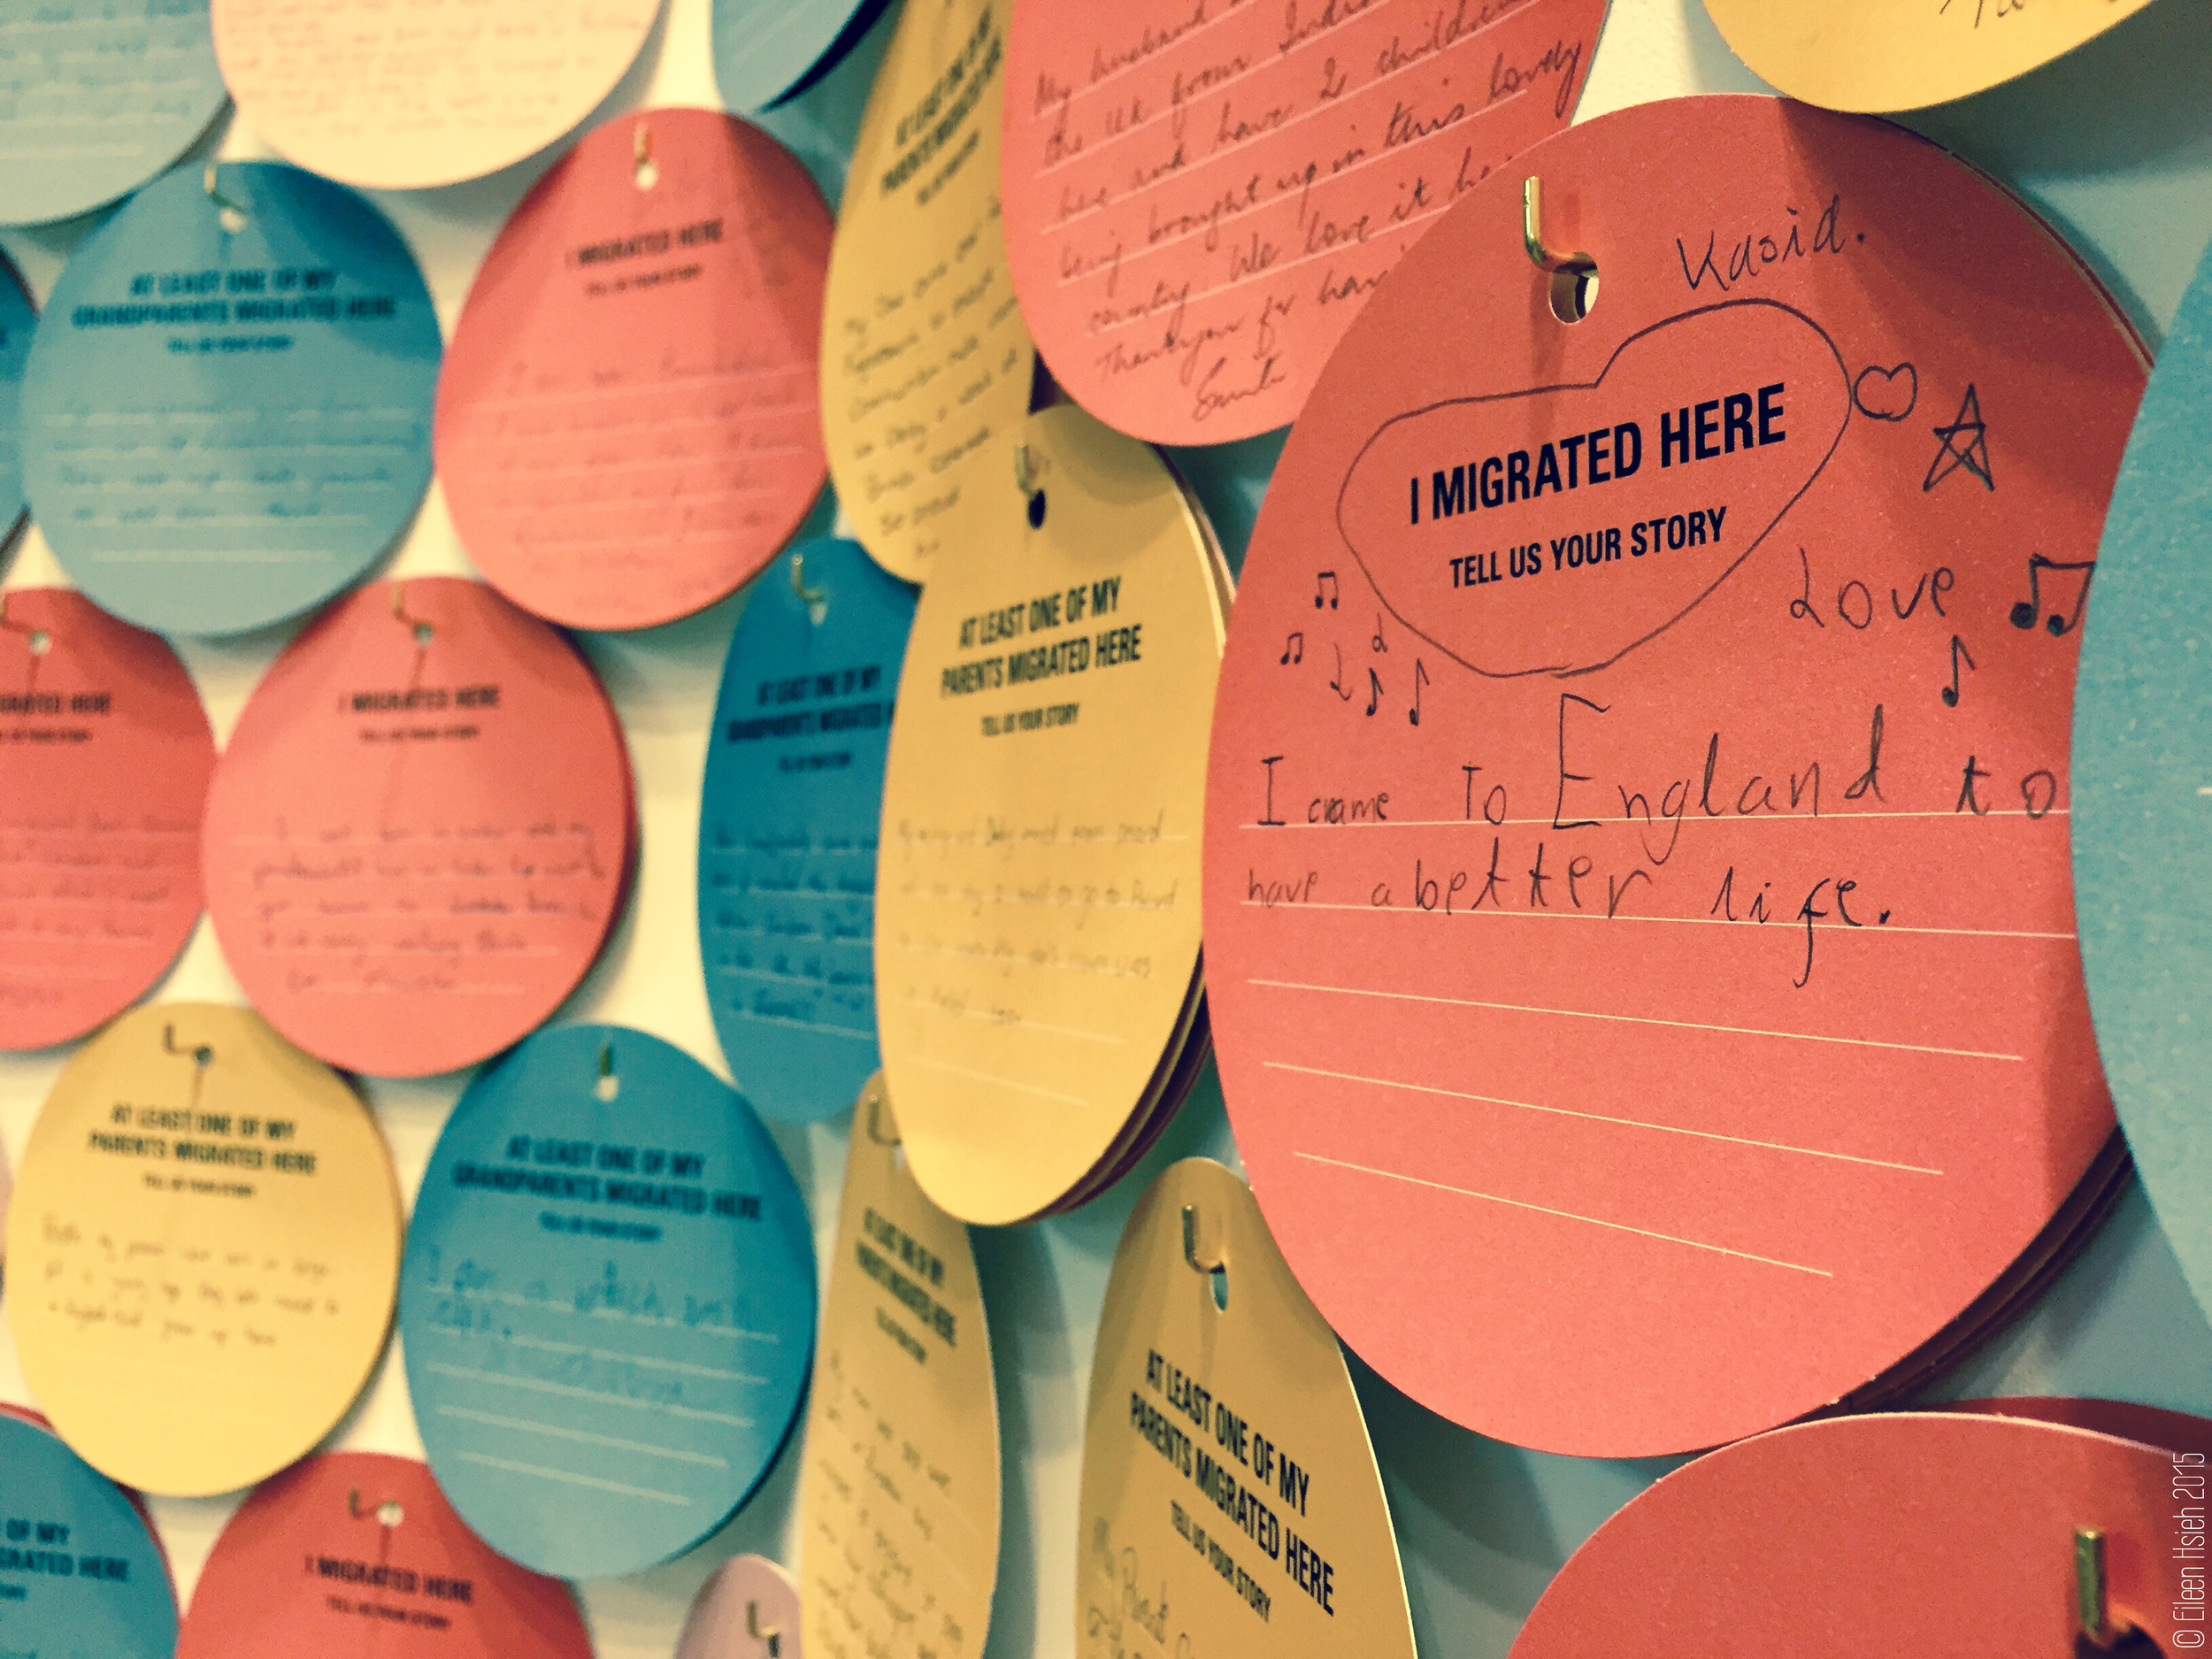 Tell Us Your Story -- A wall covered with tales of migrationat the Adopting Britainexhibition. 「接受不列顛」展覽的牆上掛滿了參觀者留下的移民故事。© Eileen Hsieh 2015